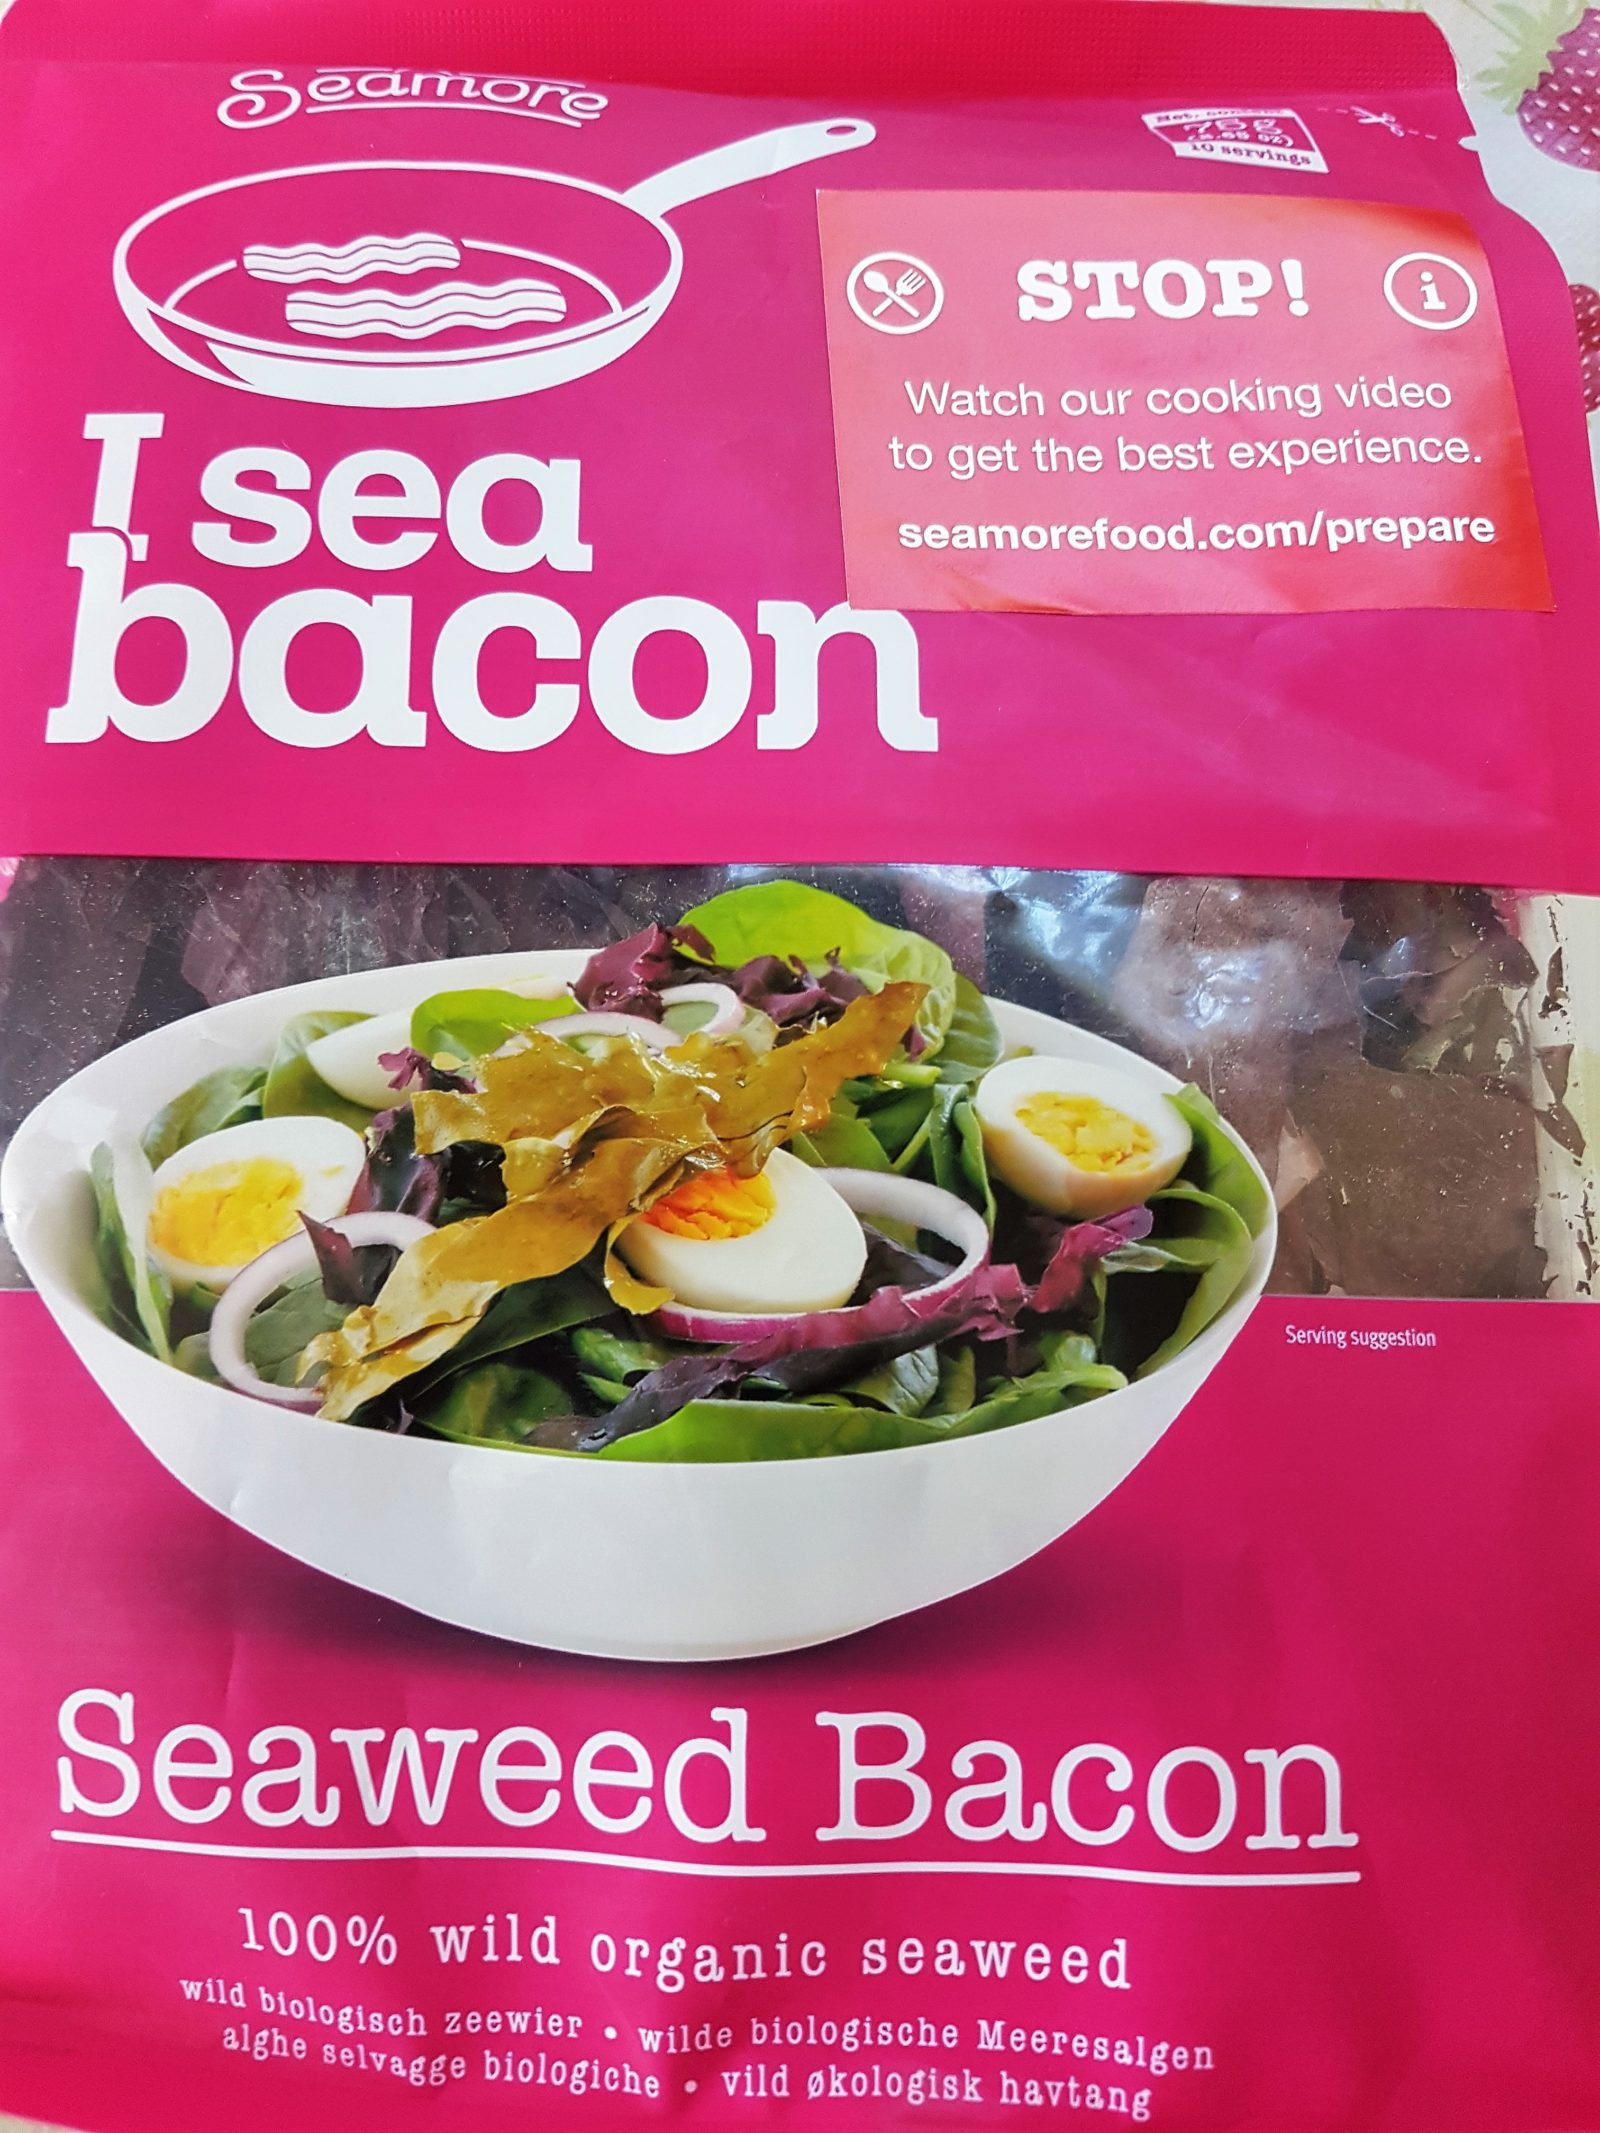 Seamore Seaweed I Sea Bacon Review